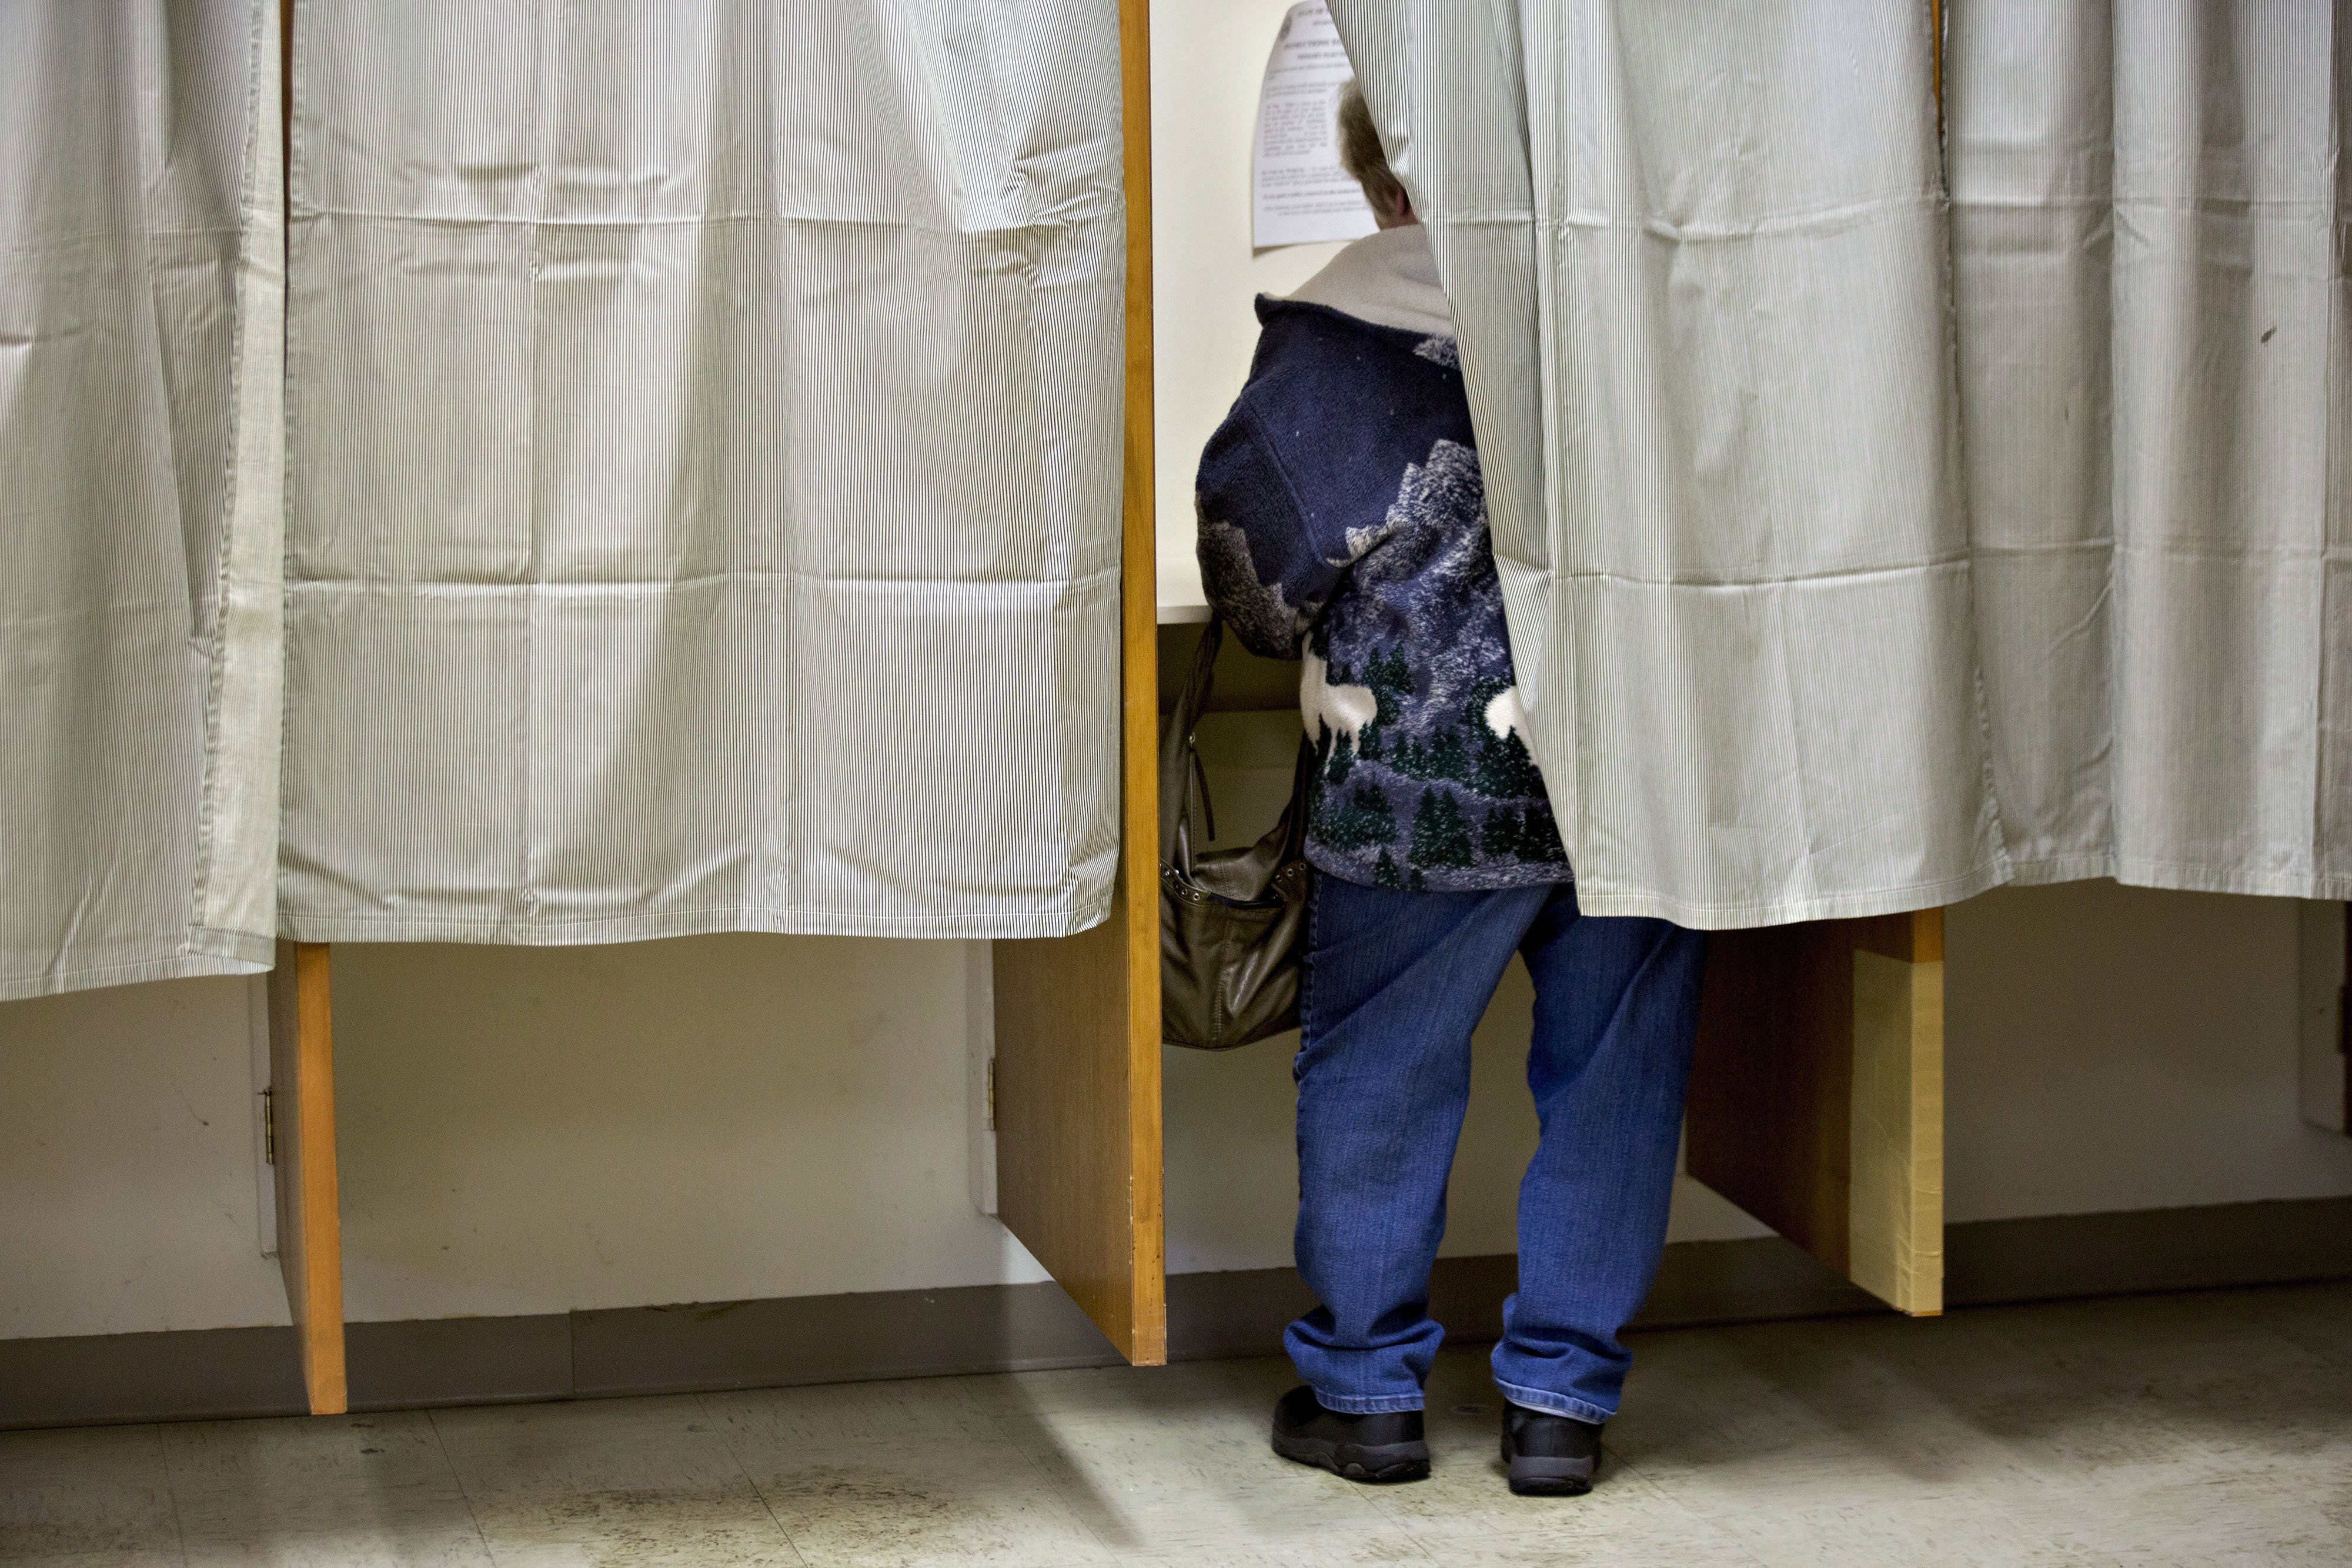 A resident stands in a voting booth while marking her ballot at the Bartlett town hall during the first-in-the-nation New Hampshire presidential primary in Bartlett, New Hampshire, U.S., on Tuesday, Feb. 9, 2016. Polls suggest that Donald Trump maintains a dominant lead against his Republican rivals in New Hampshire ahead of today's primary. Photographer: Andrew Harrer/Bloomberg via Getty Images